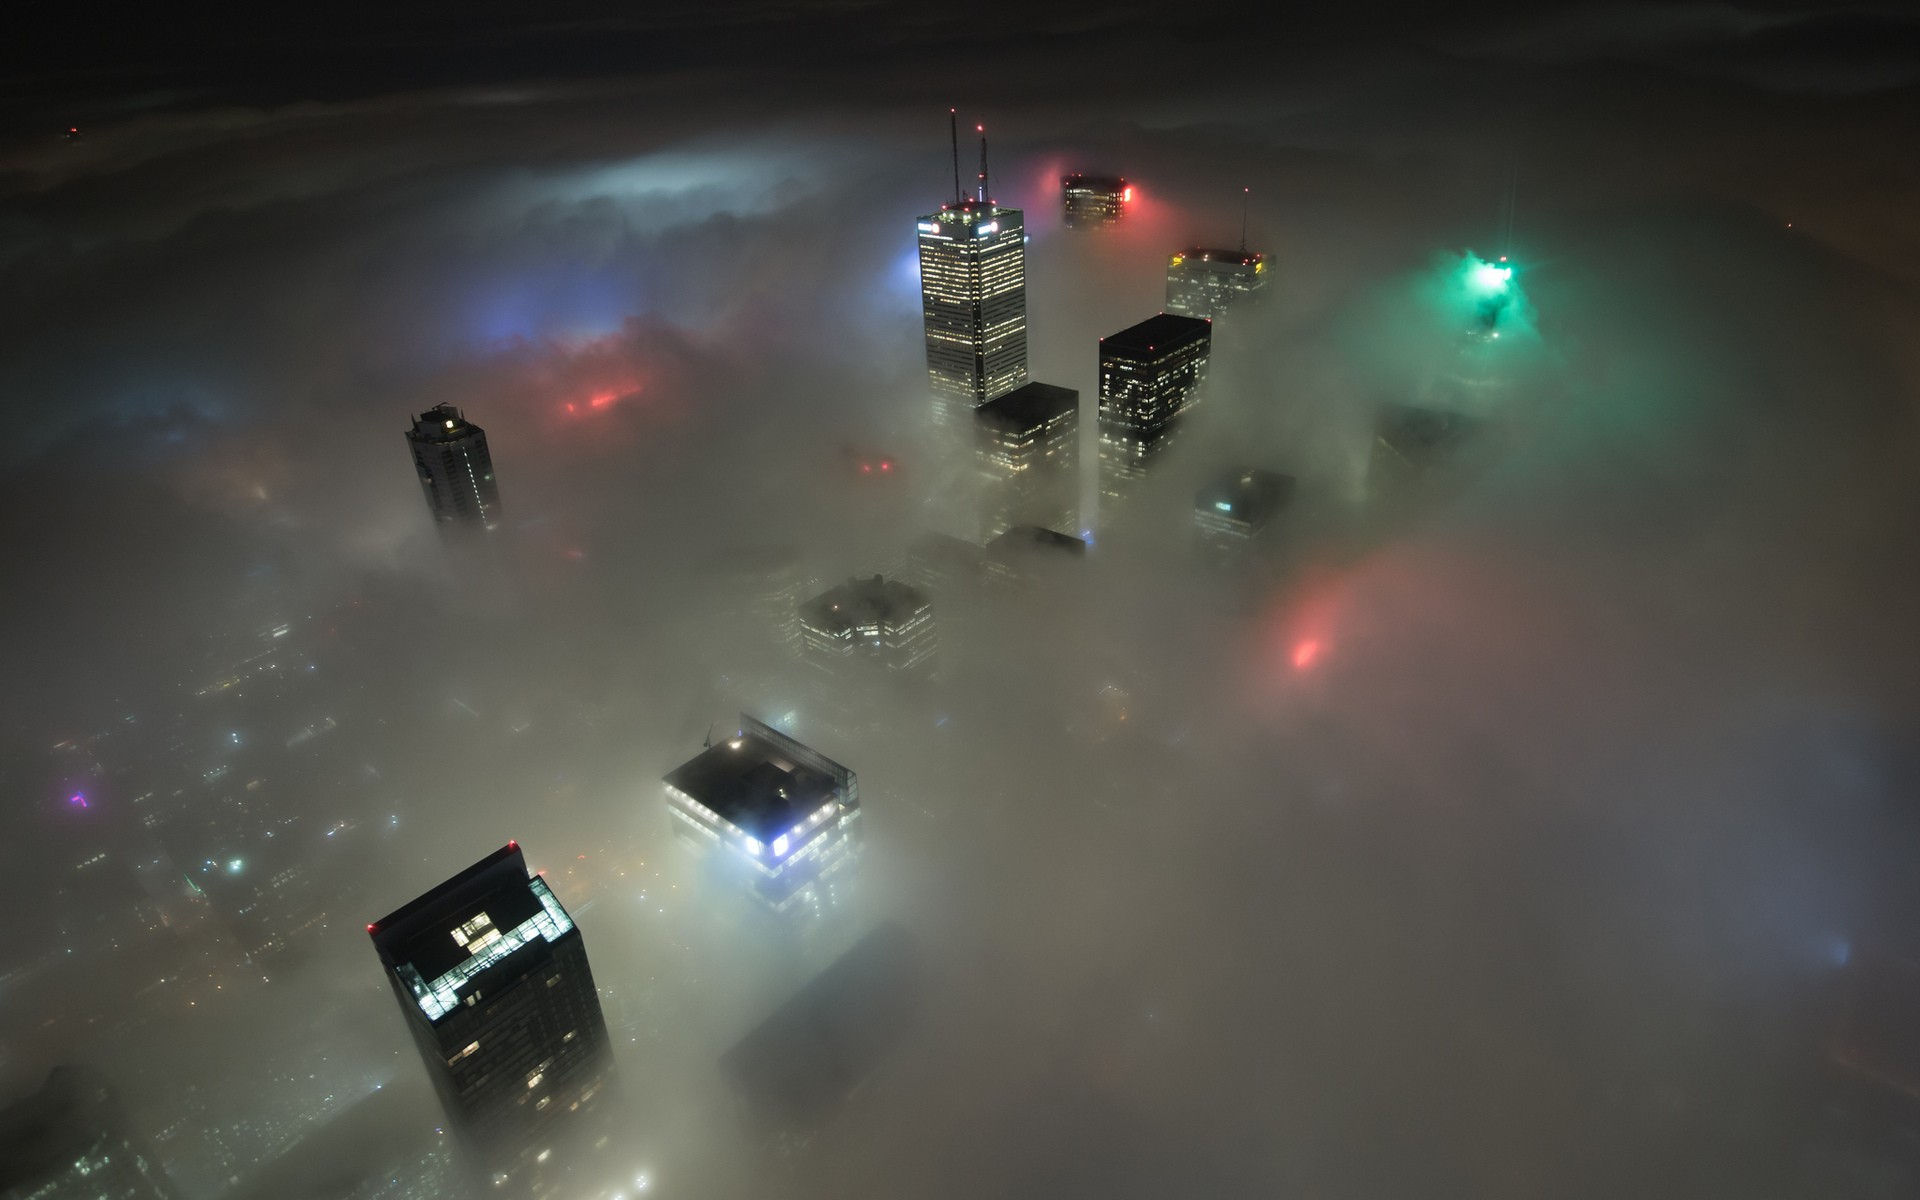 City-Obscured-by-Fog-x-wallpaper-wp4604860